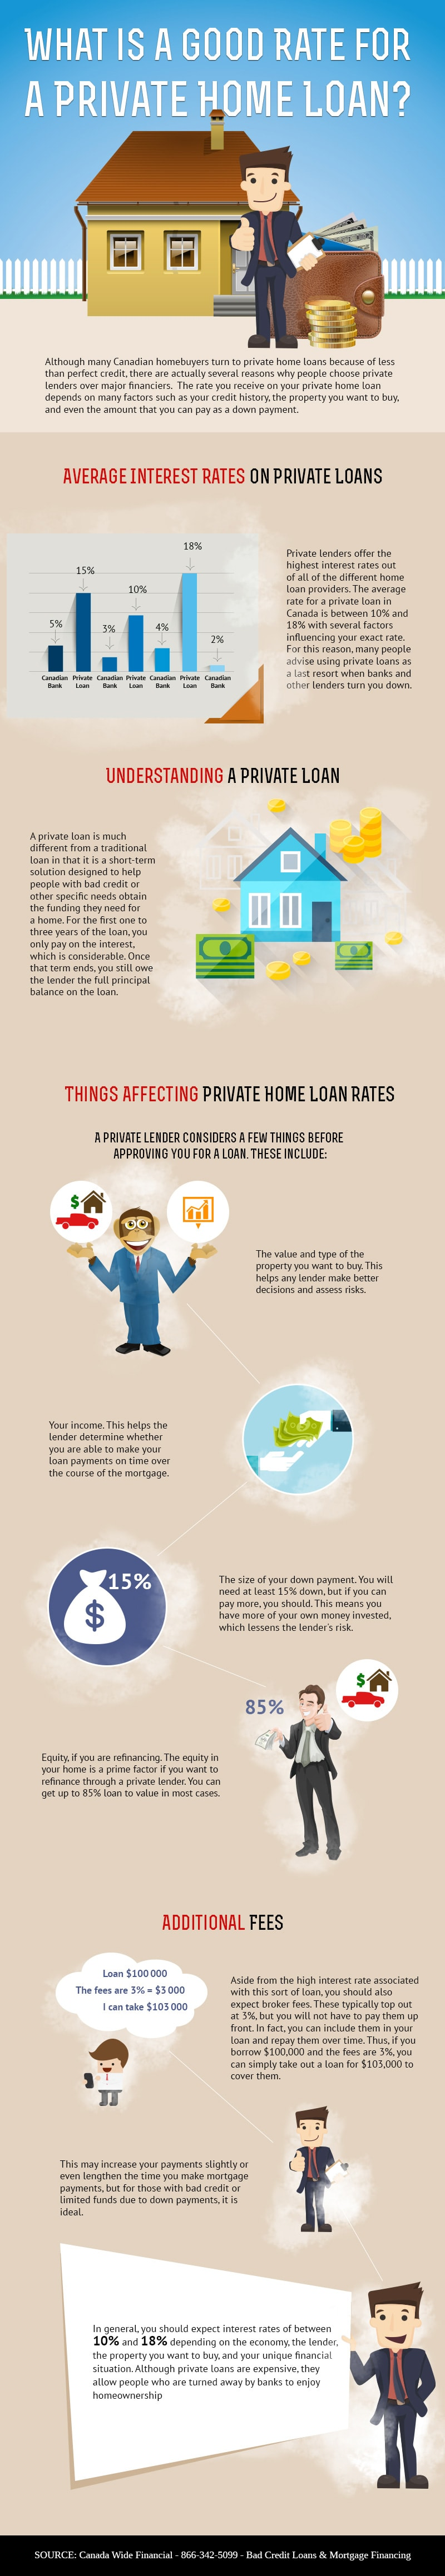 What is a Good Rate for a Private Home Loan?